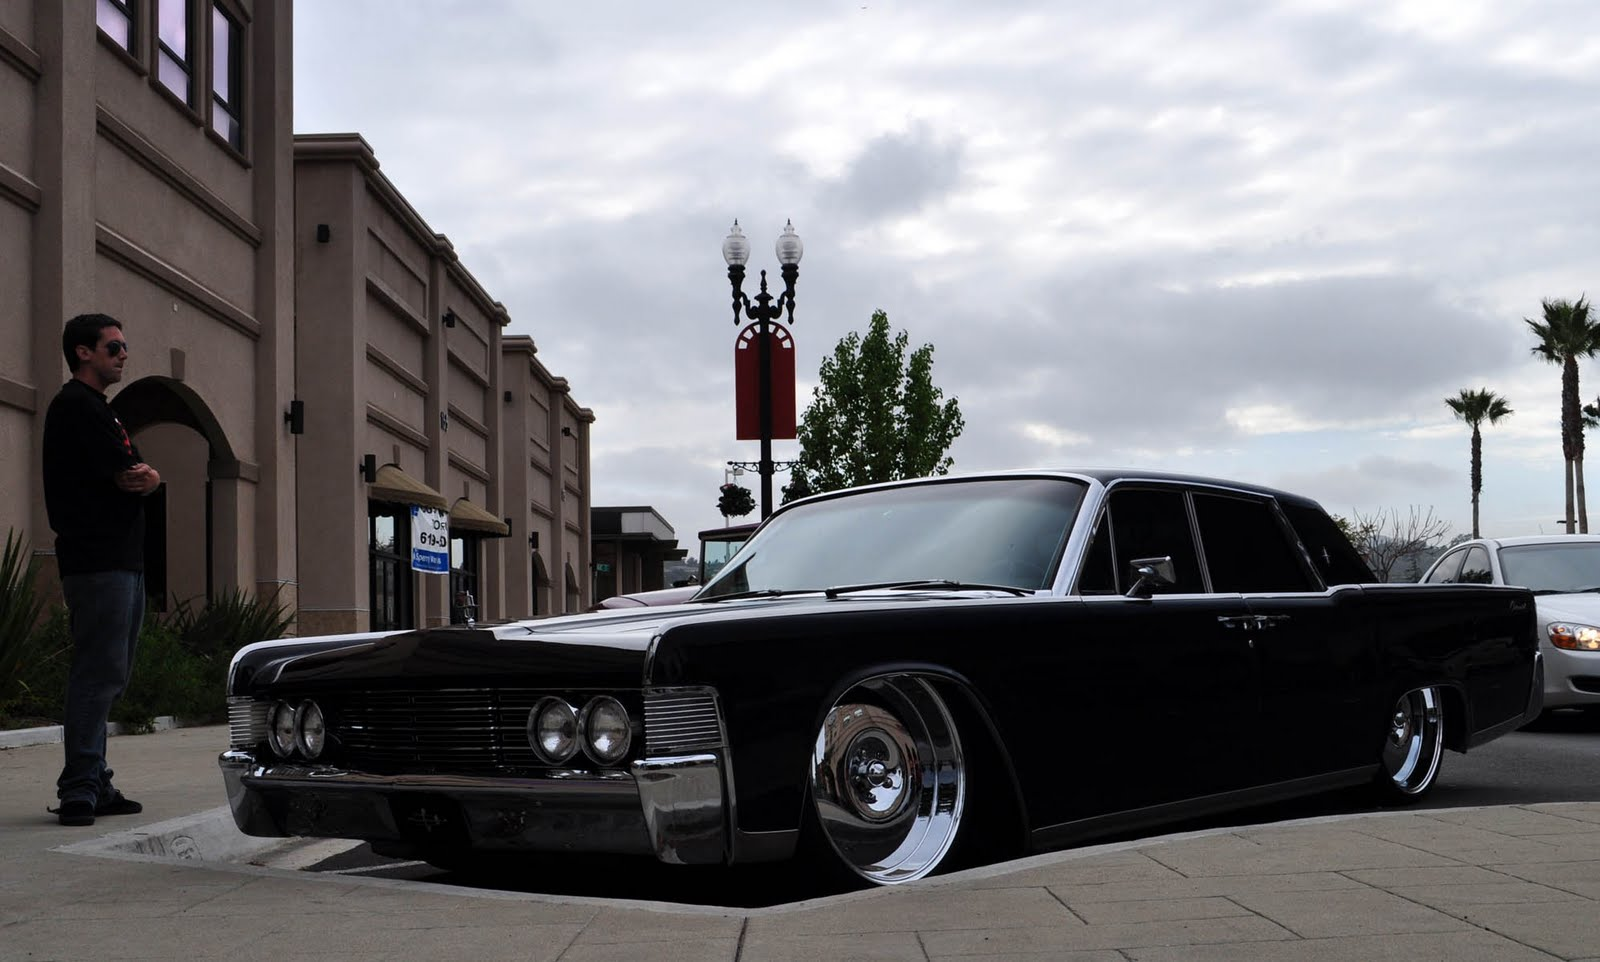 1600x962 - Lowrider Wallpapers 18